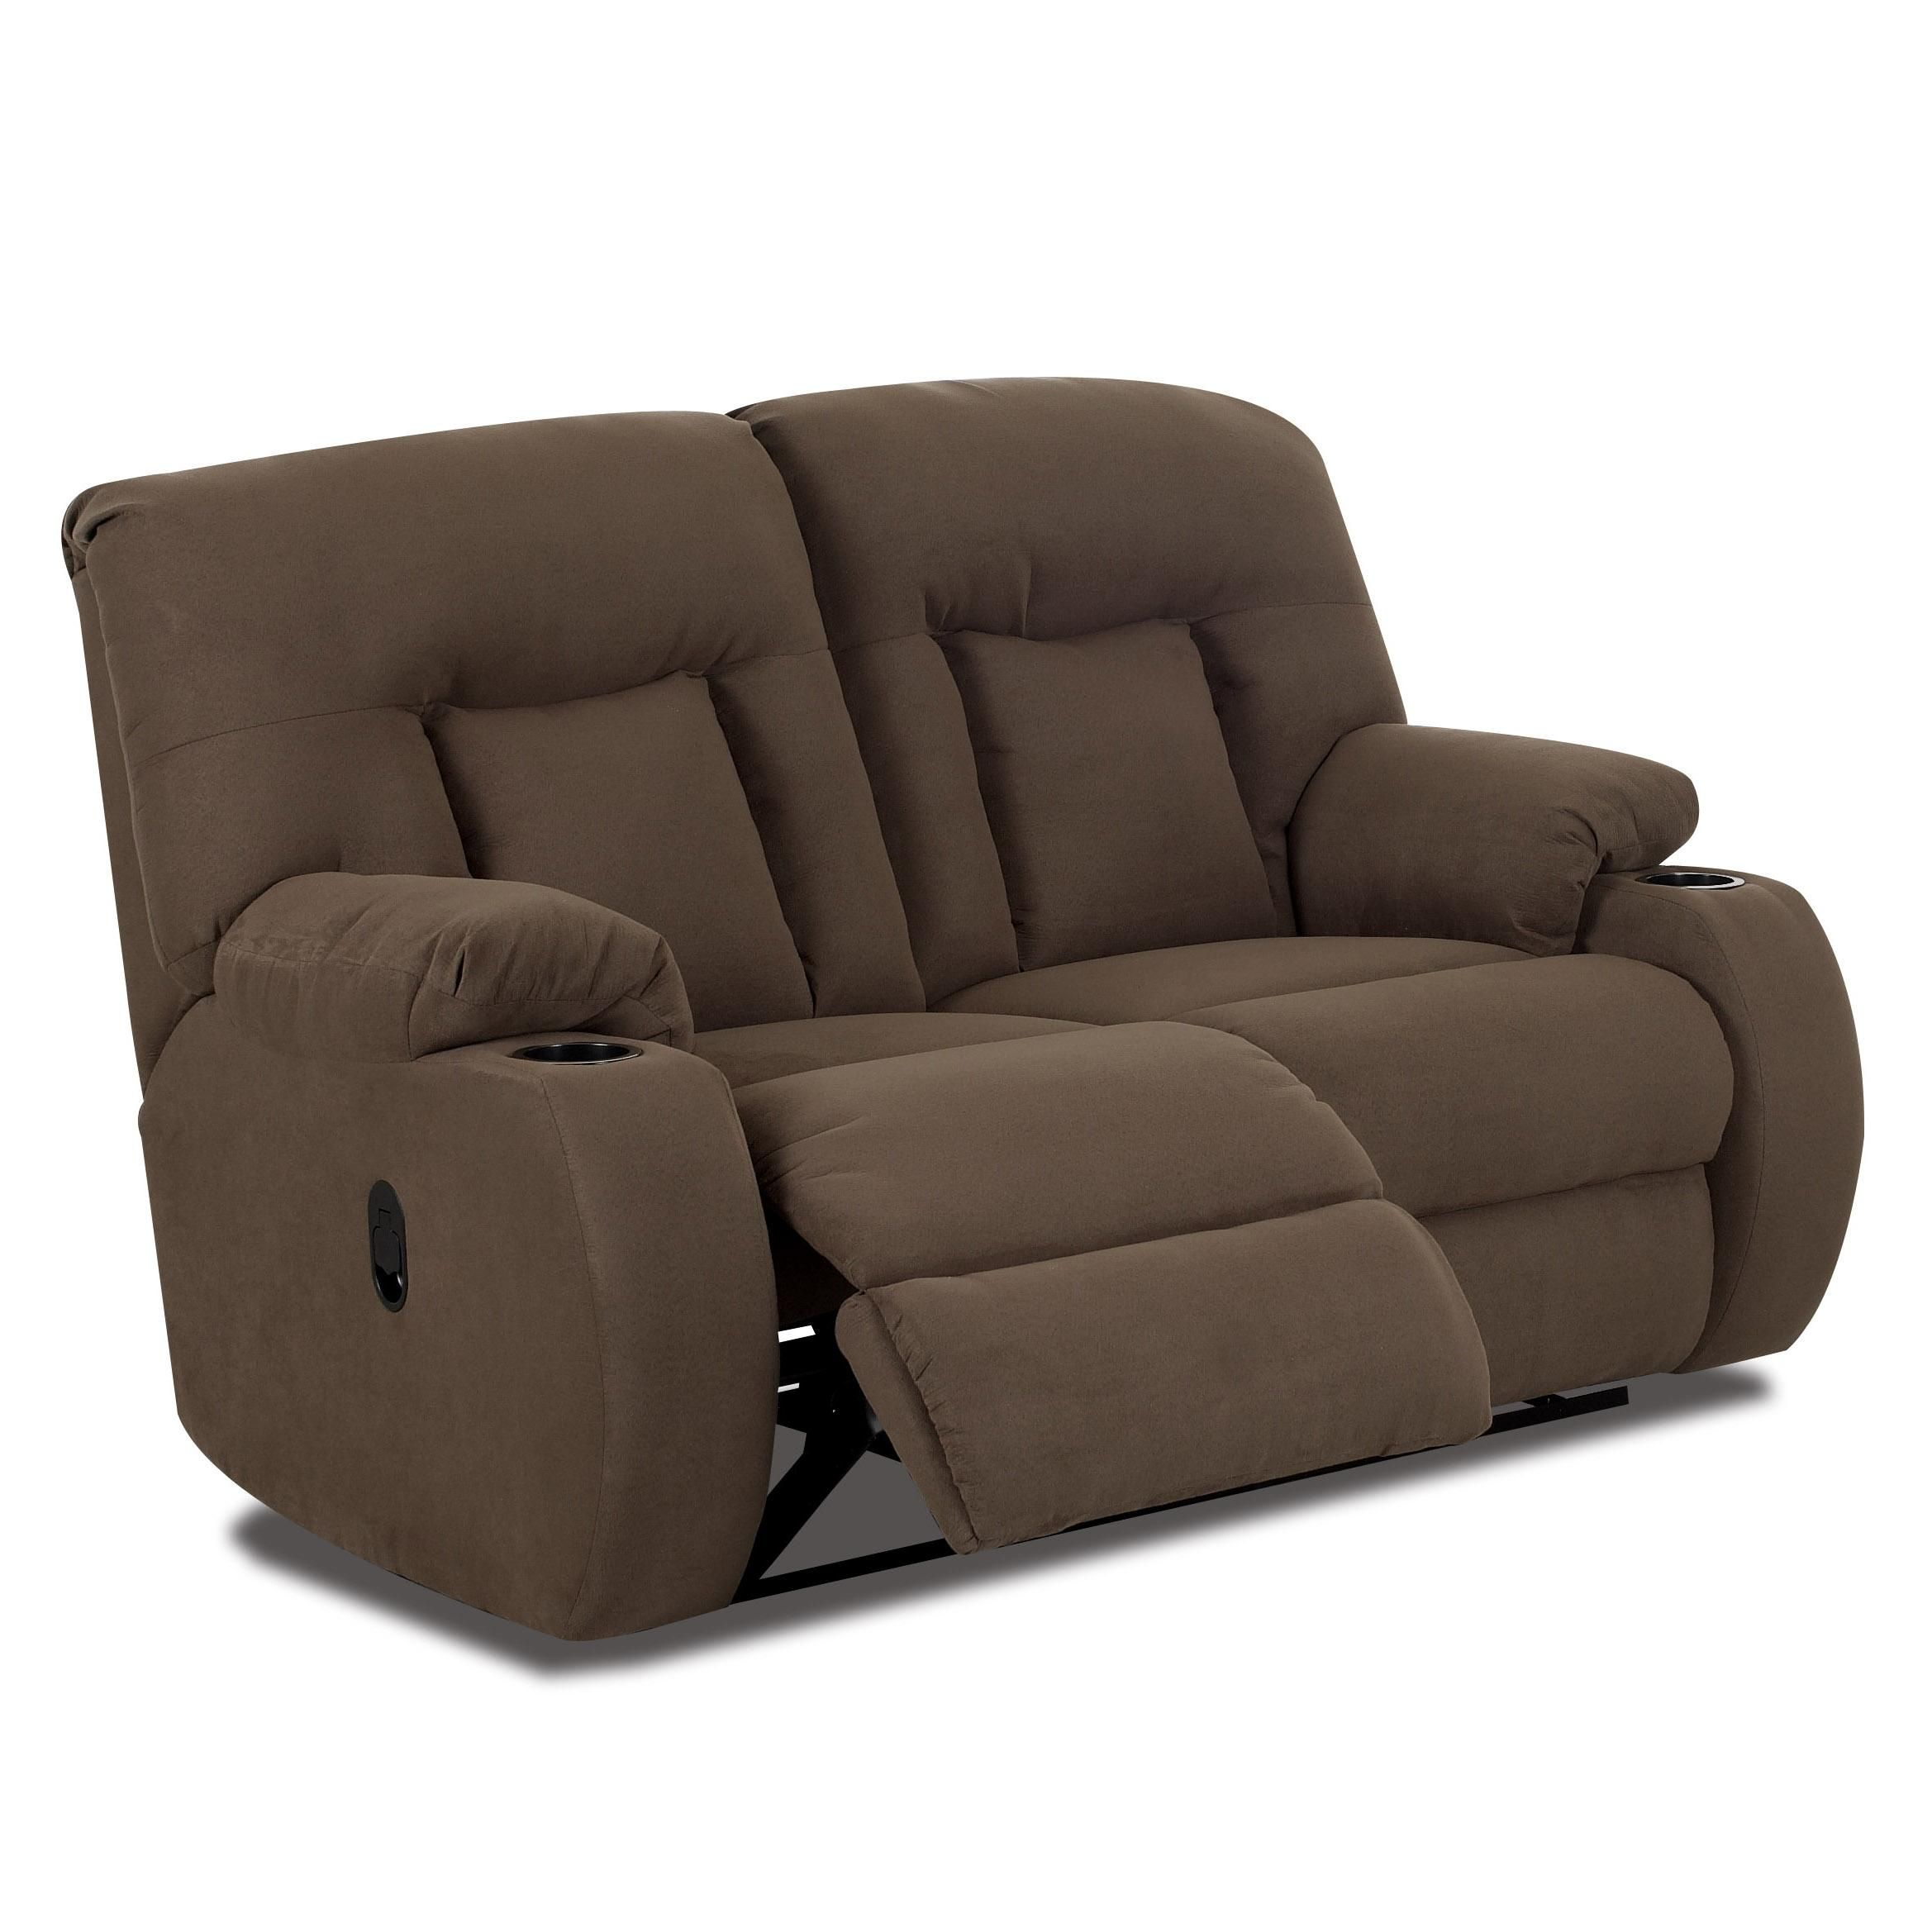 decor modern small leather home room ideas and theater design with loveseat